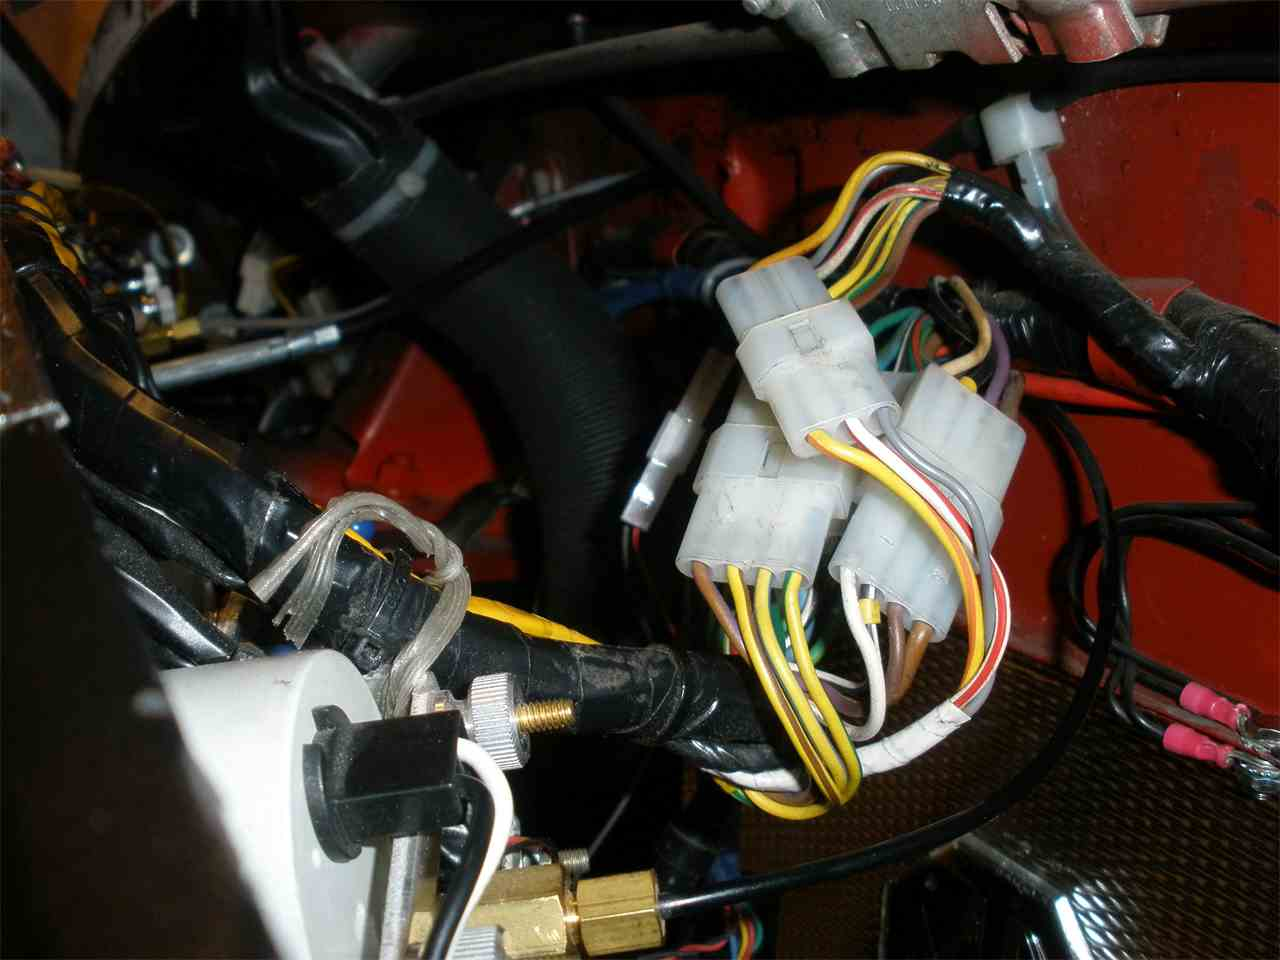 1974 Mgb Coil Wiring Diagram Wire Data Schema 1973 Mg Midget Unusual Images Electrical 1967 1976 Engine